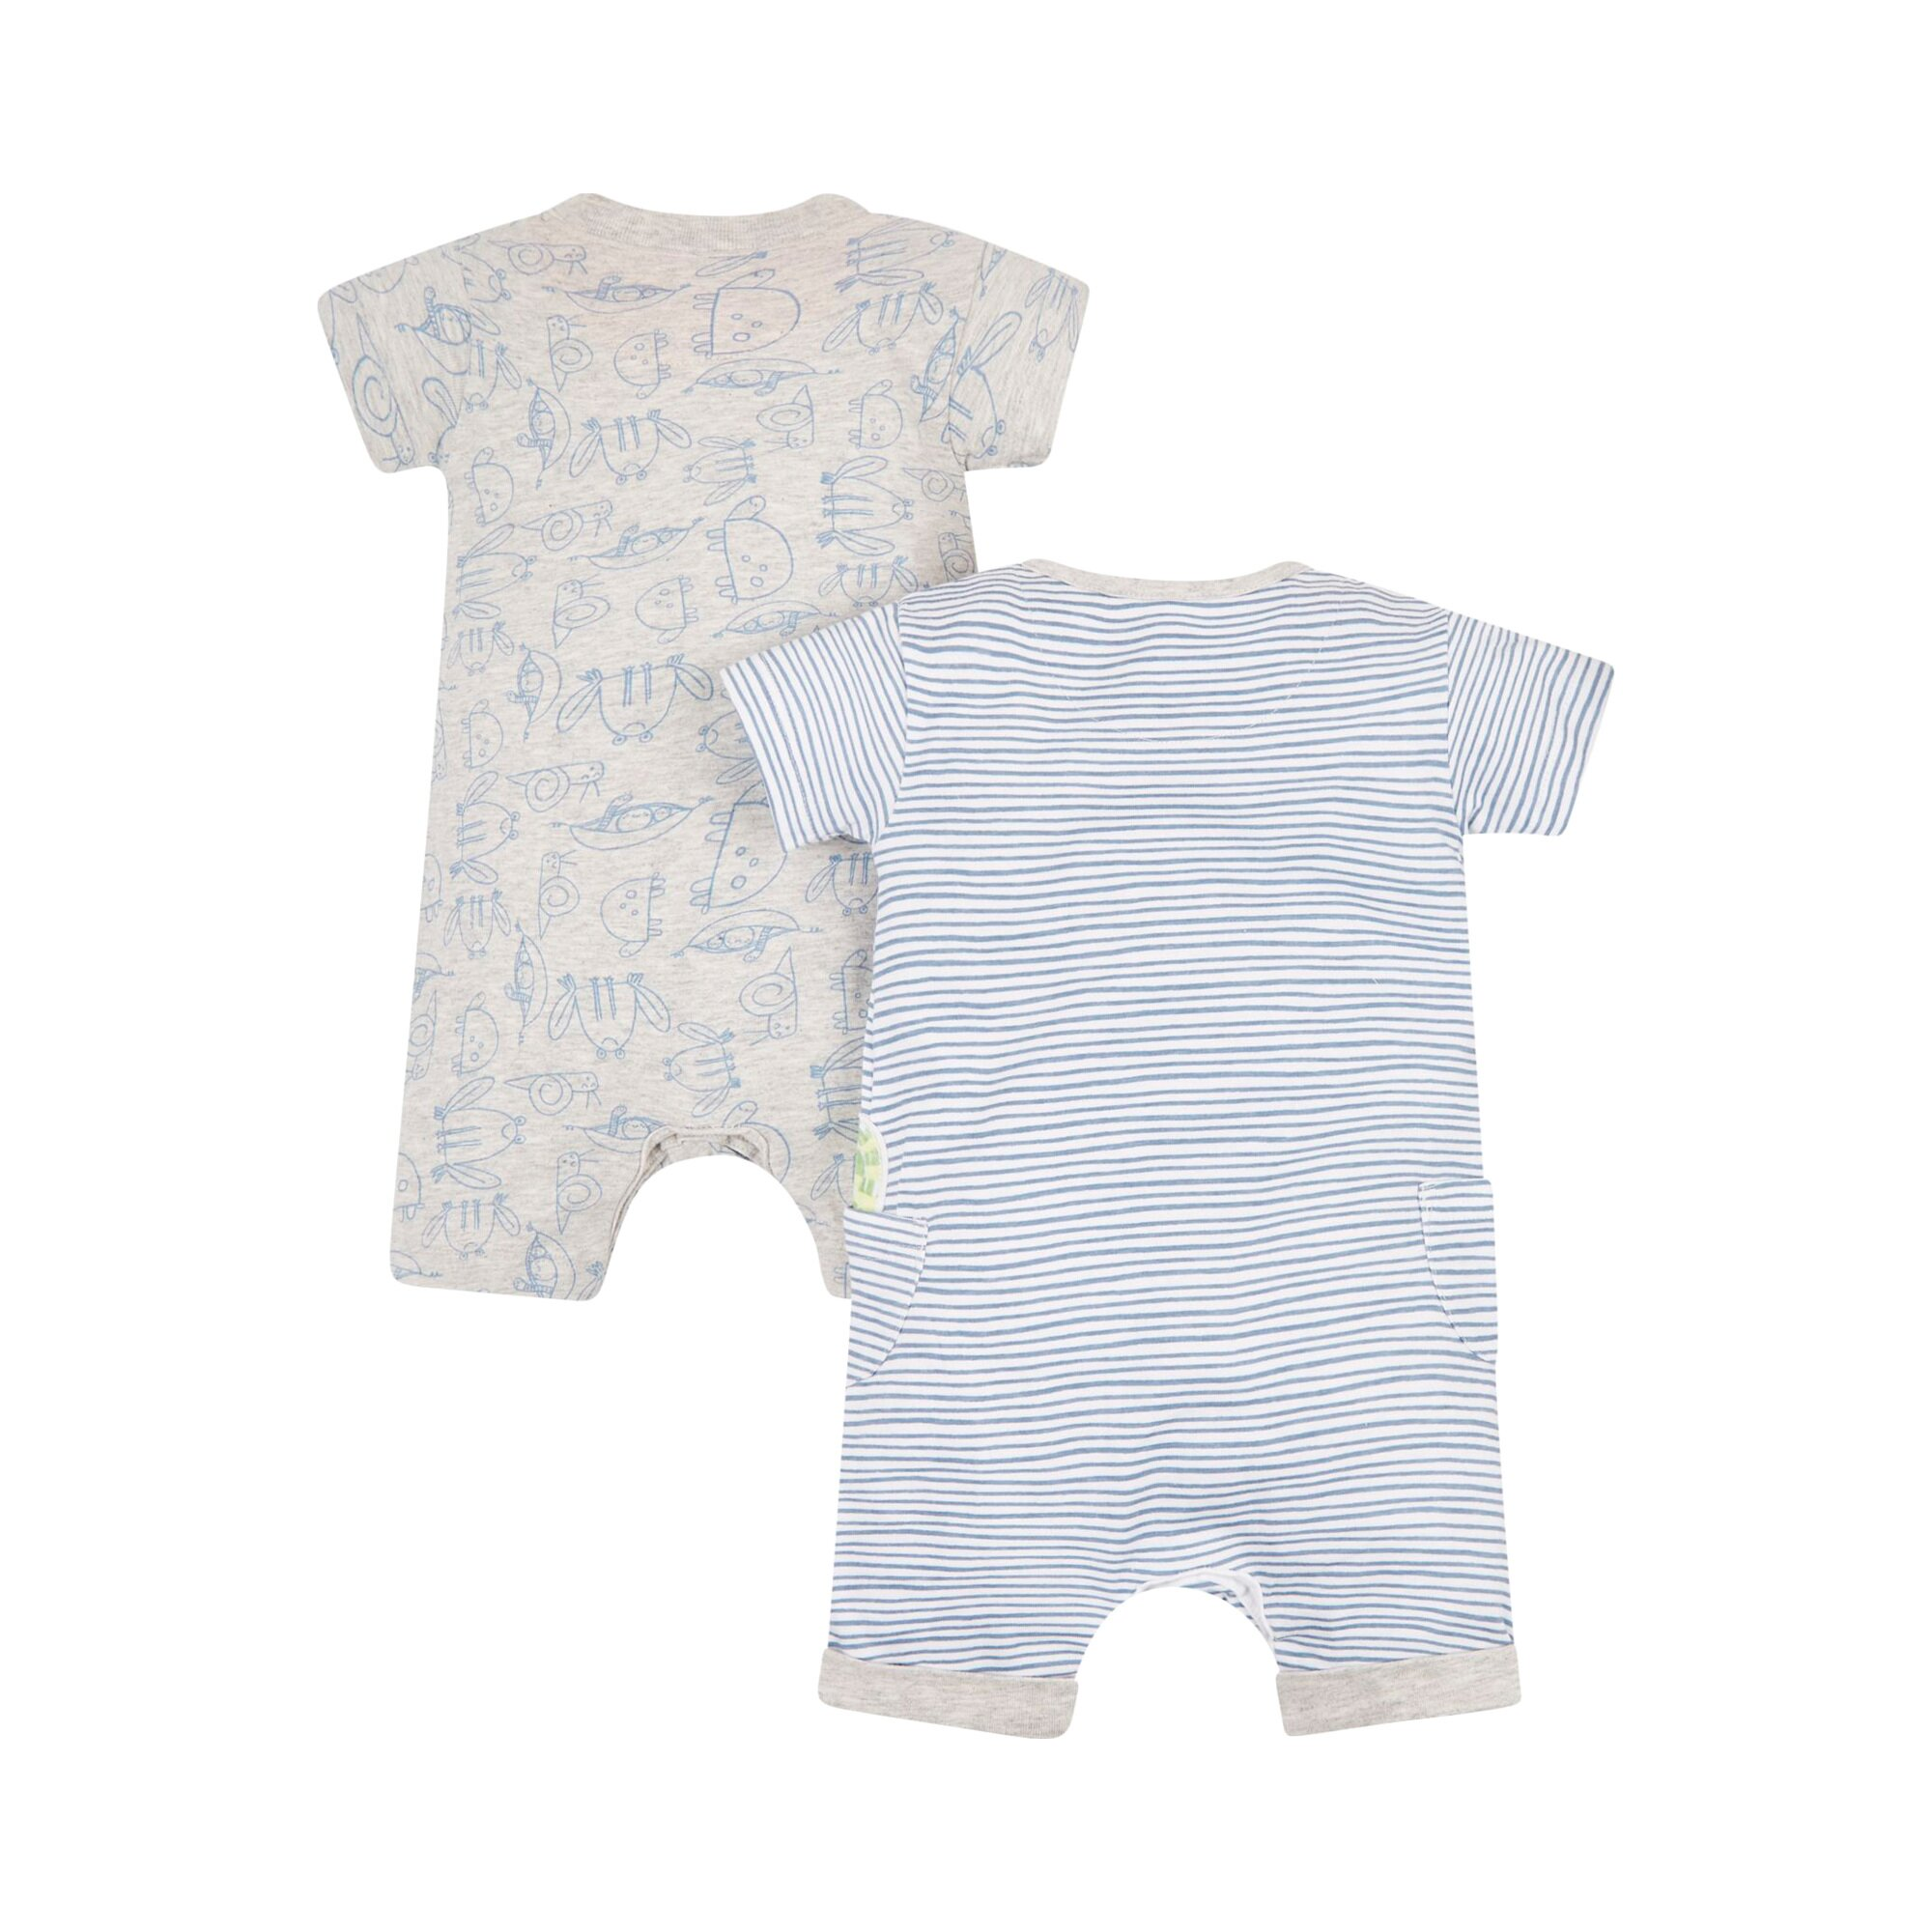 mothercare-2er-pack-spieler-tiere